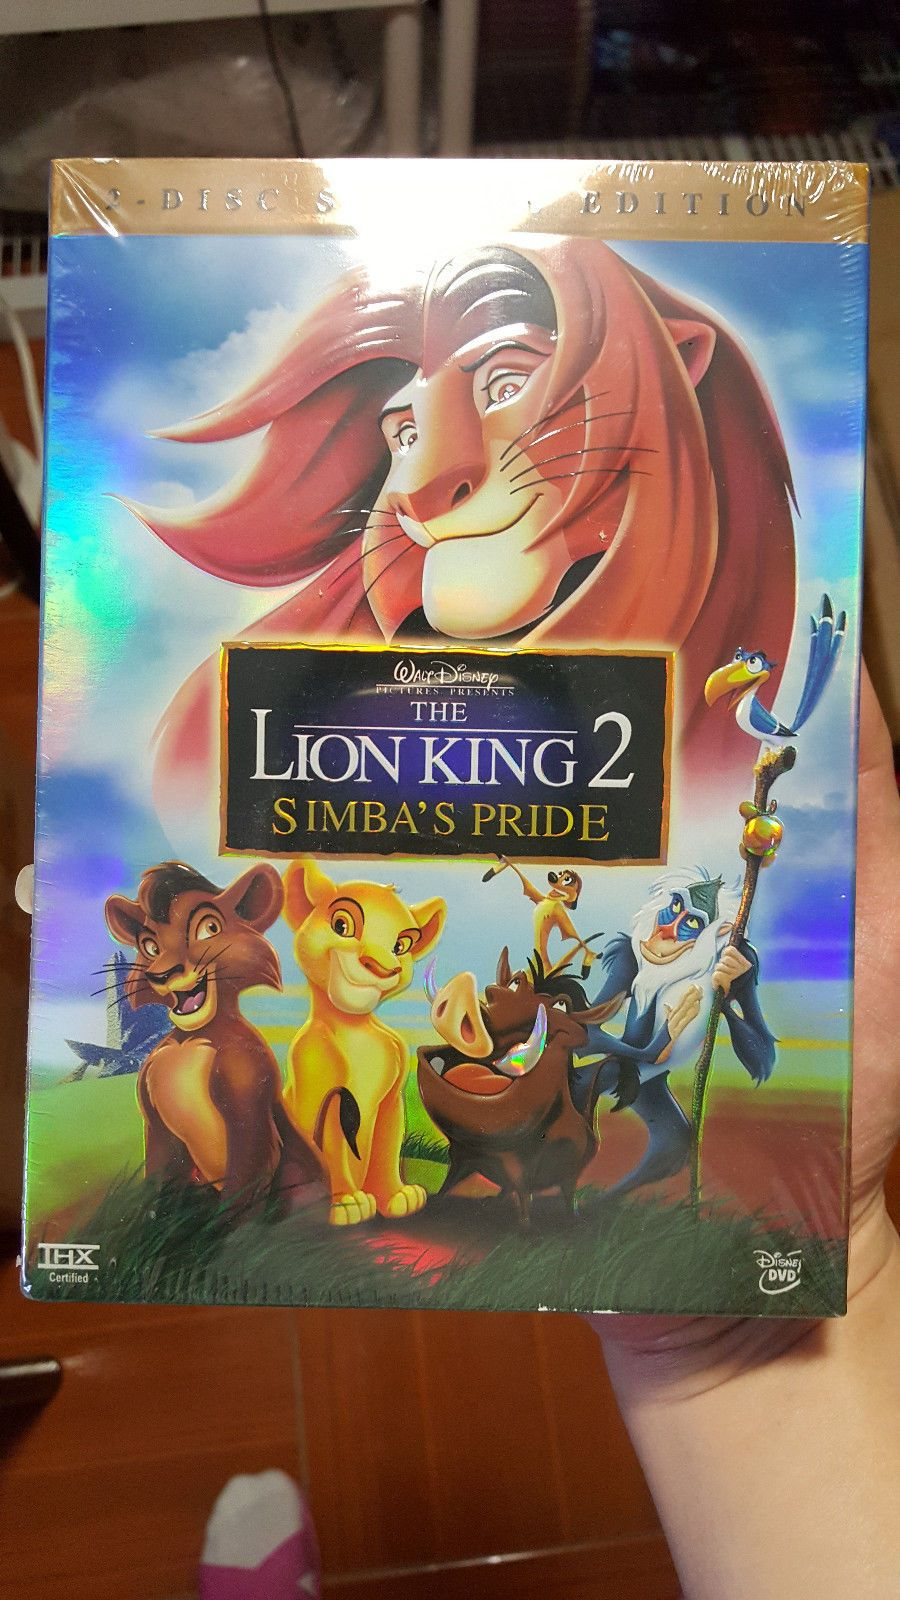 The Lion King 2 Simba S Pride Special Edition Dvd 2004 2 Disc Set Products Lion King 2 Lion King